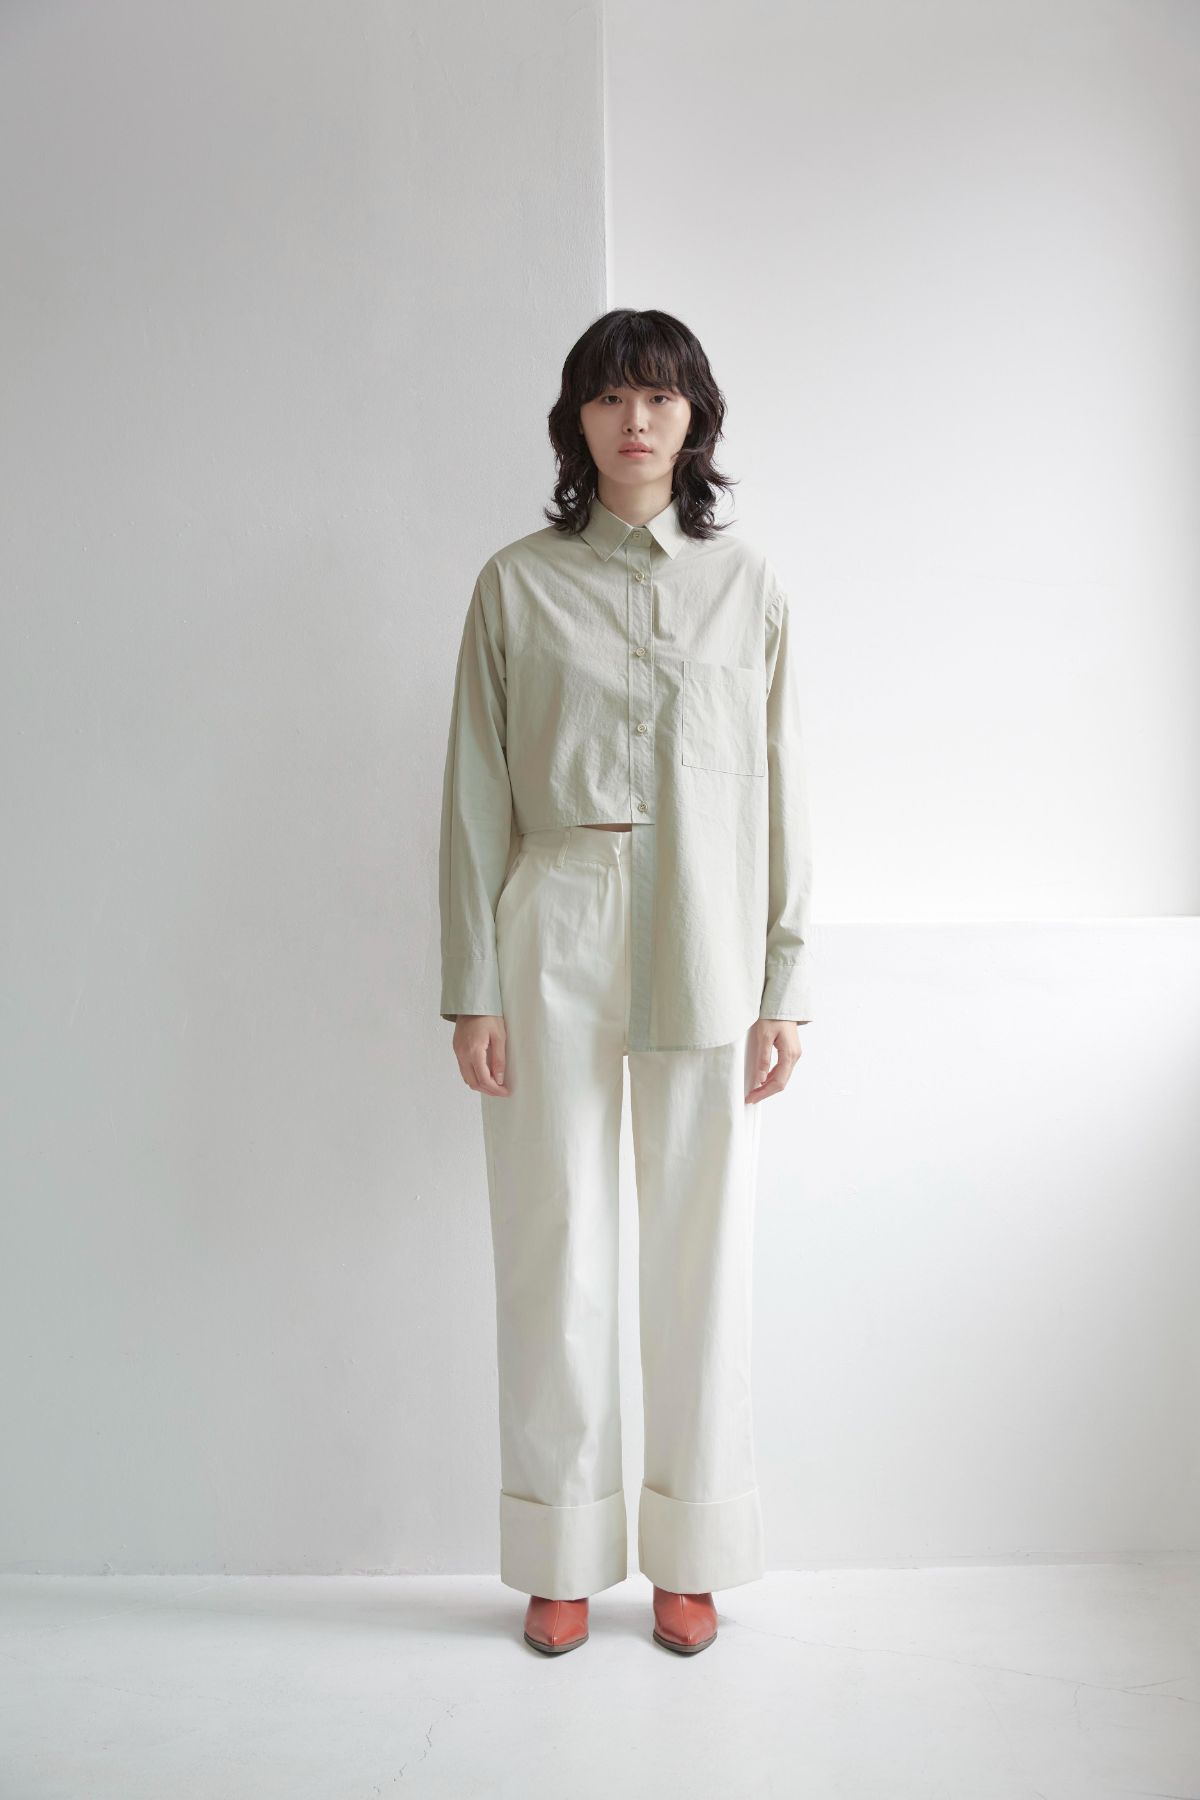 TAMEGA SHIRT Shirts from TEXTURE ZERO curated by pu·rist